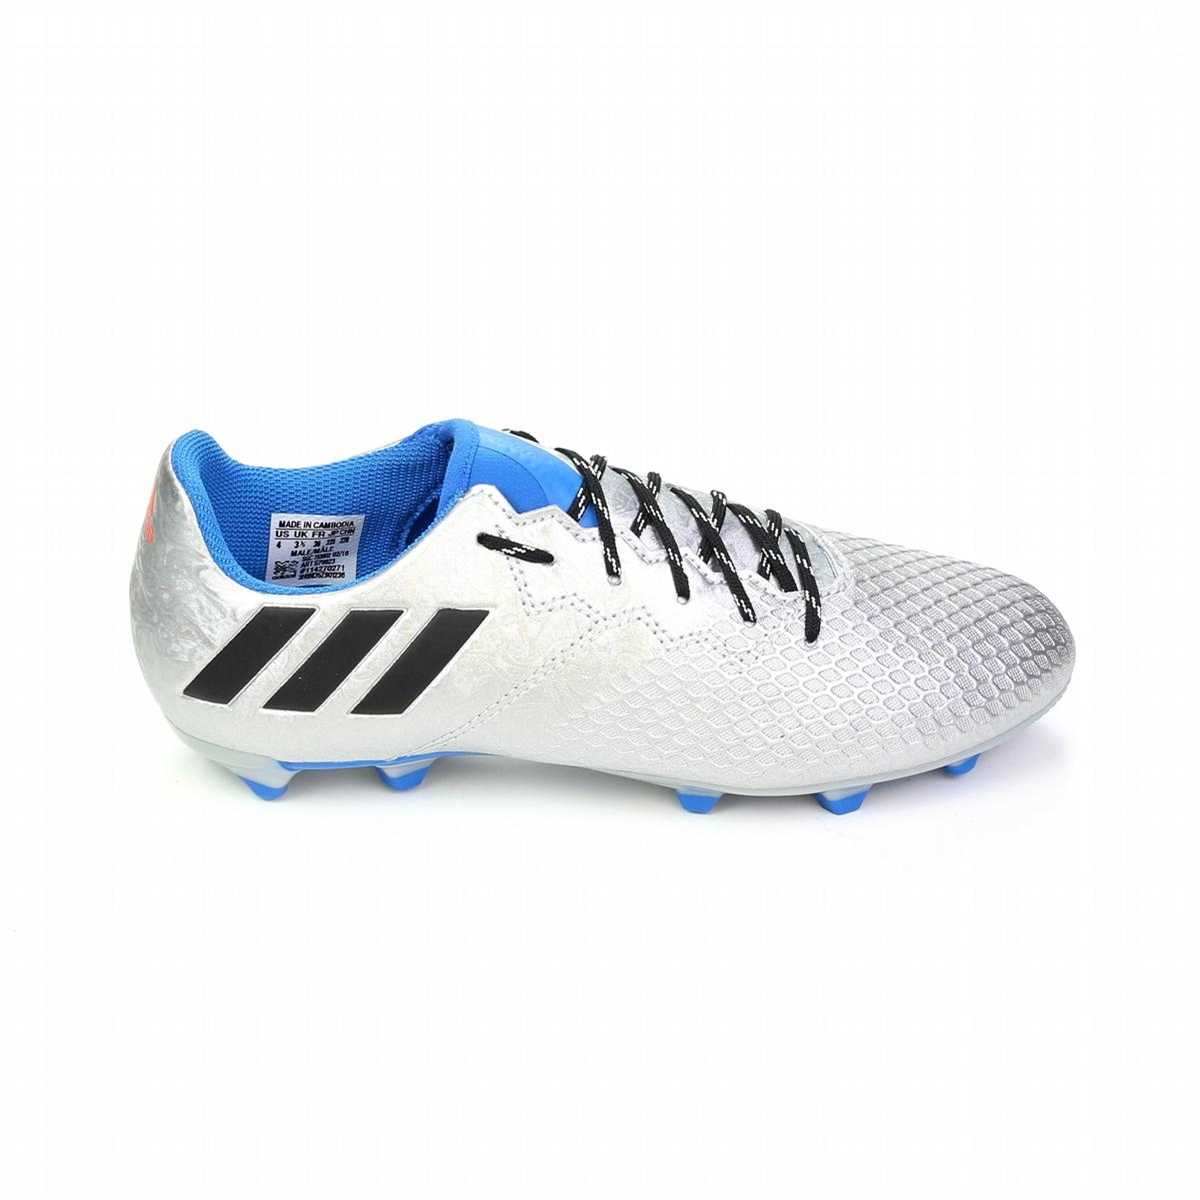 Adidas Messi 16.3 Youth FG Soccer Cleats (Silver Metallic Core Black ... 460cf3bc6